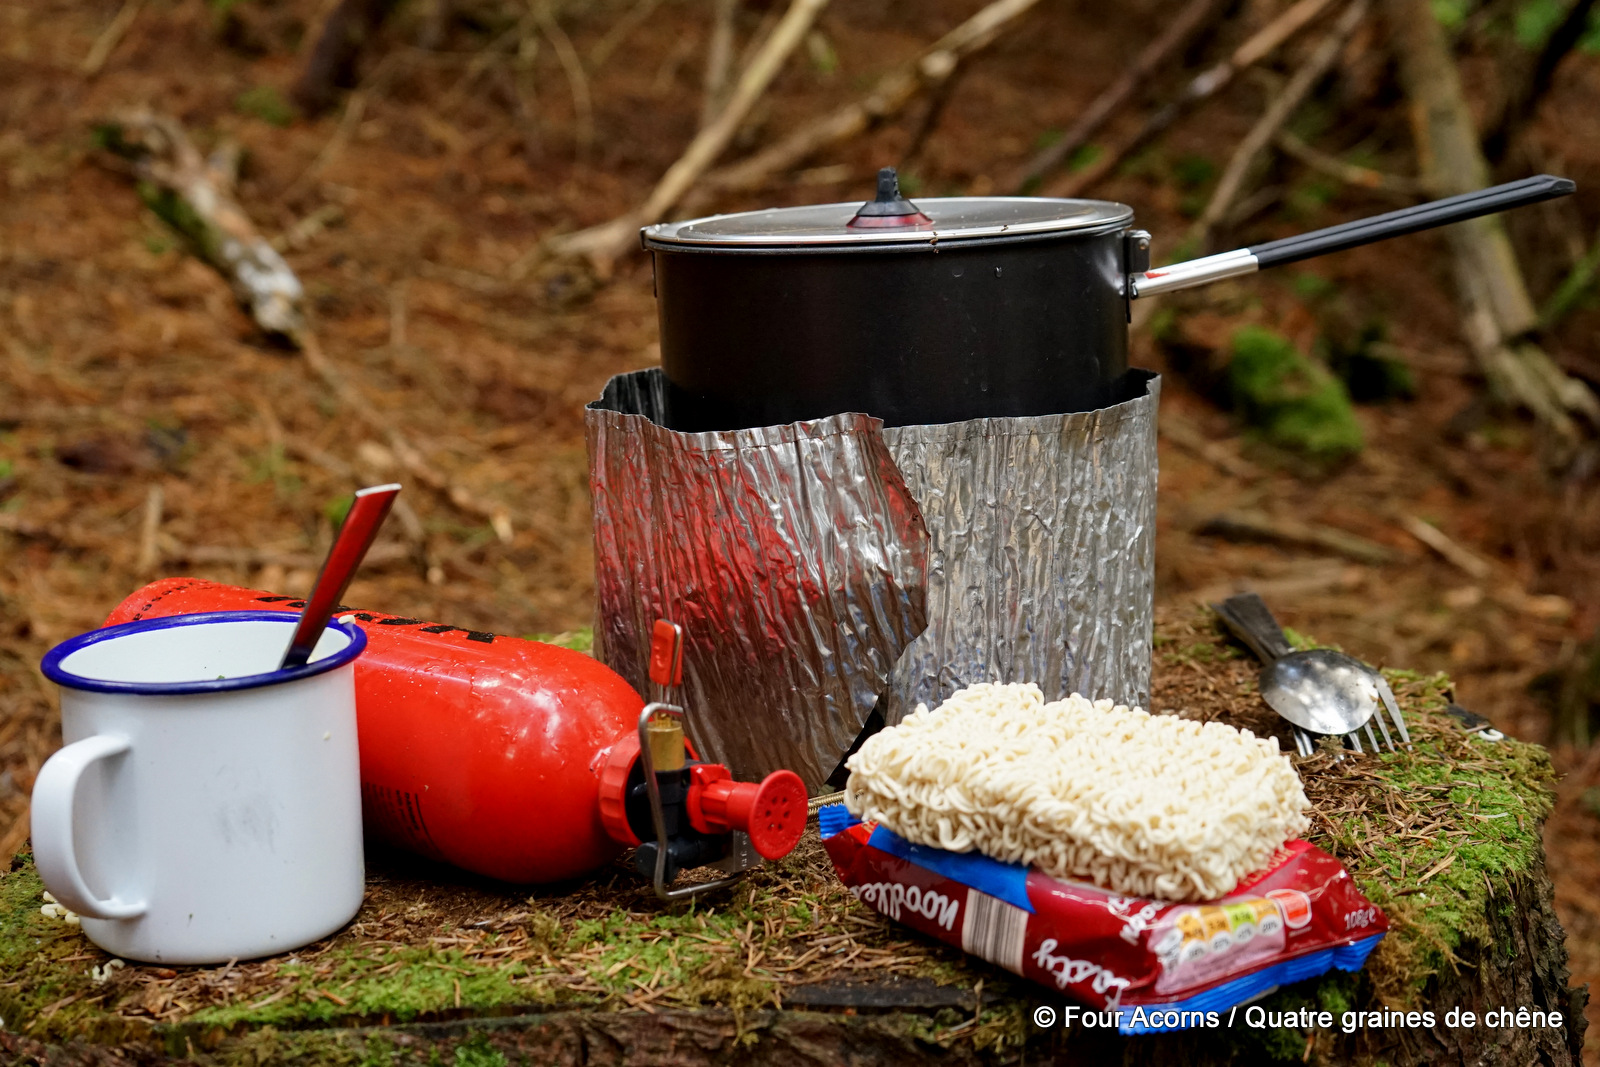 noodles-stove-warm-food-hiking-bushcraft